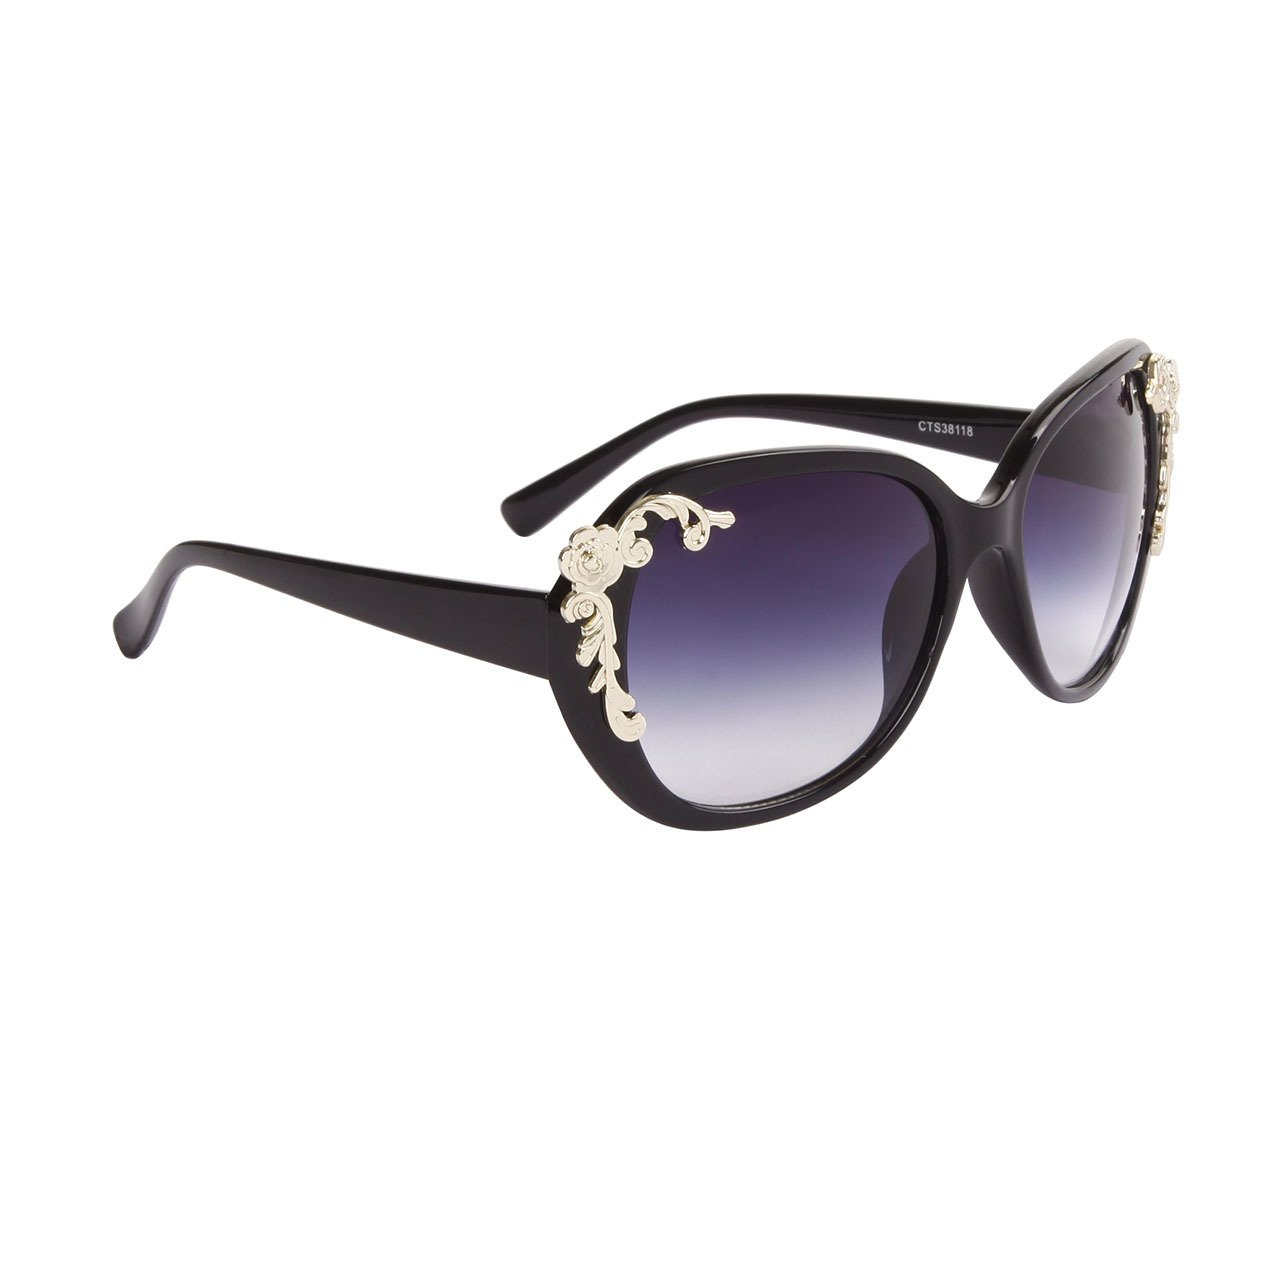 DESIGNER INSPIRED WOMEN'S SUNGLASSES BLACK FRAME CELEBRITY SPOTTED EYE WEAR WITH GOLD FLOWERS